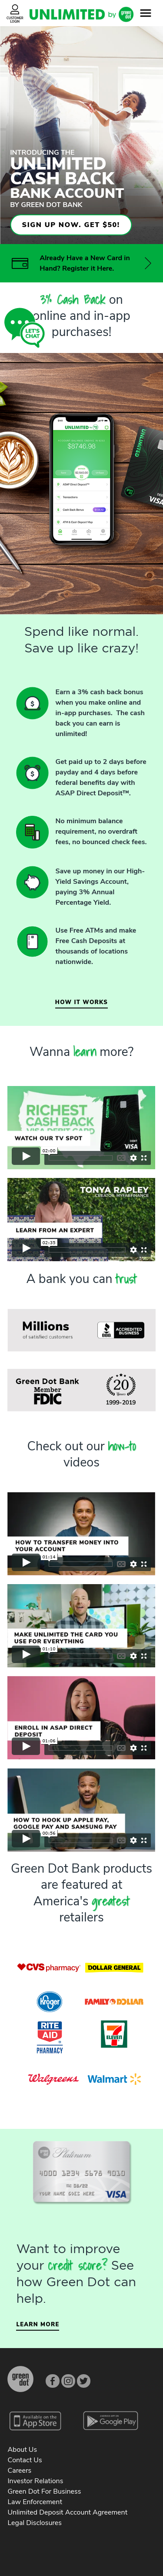 Example of Design for Finance, Banking, Mobile Landing Page by greendot.com | Mobile Landing Page Design